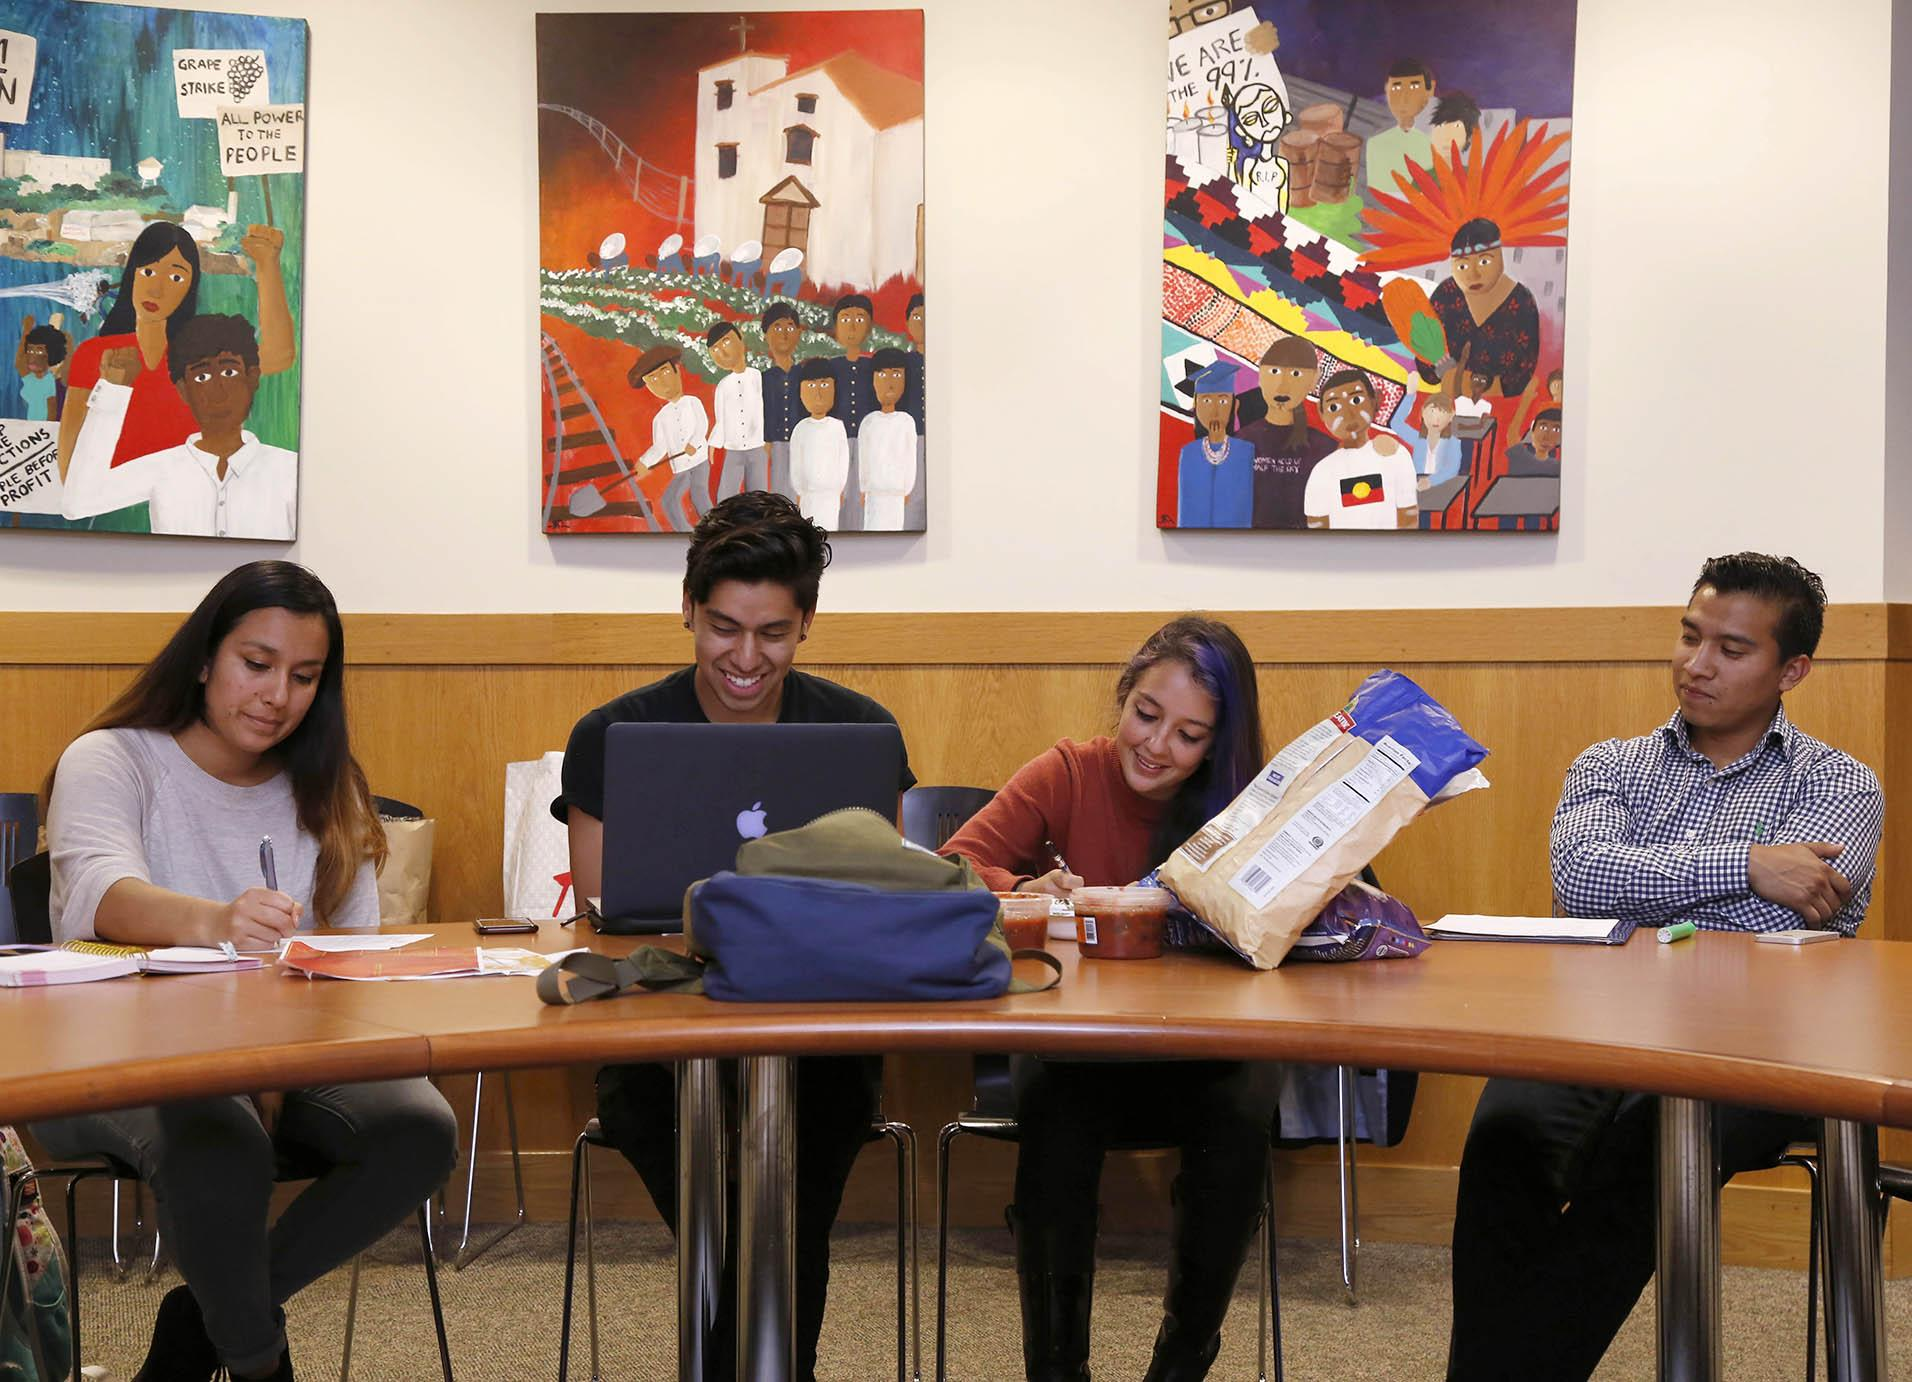 (left to right) Janet Lopez-Galindo, Miguel Castillo, Pamela Ortiz and Ramese Orta prepare for the UndocuWeek event occurring on Nov. 16 to 20 during their weekly IDEAS meeting Wednesday Oct. 28, 2015. (Emma Chiang / Xpress)